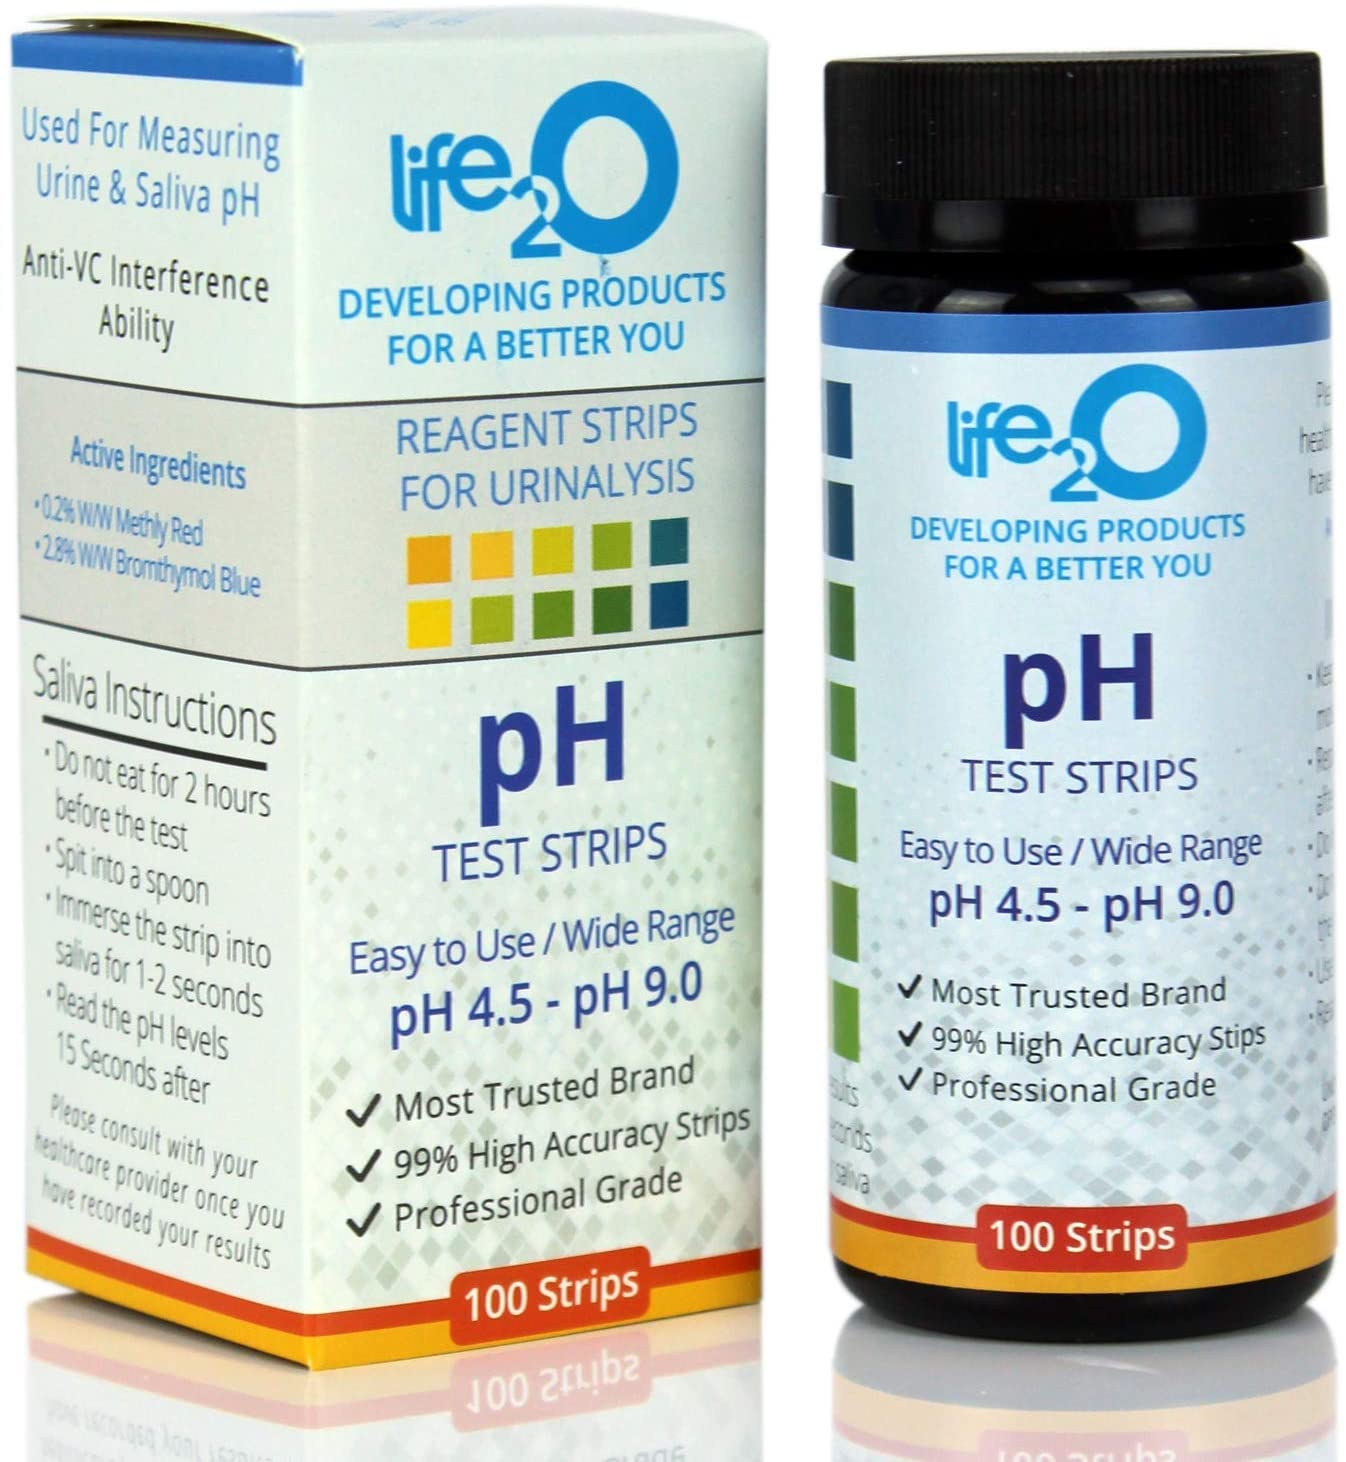 pH Test Strips for Urine & Saliva 100ct   Alkalinity & Acidity Testing Strips to Test Body pH Blanace & Levels   Plan a Healthy Diet & Monitor The Food Intake with Our Urinalysis Urine pH Testing Kit